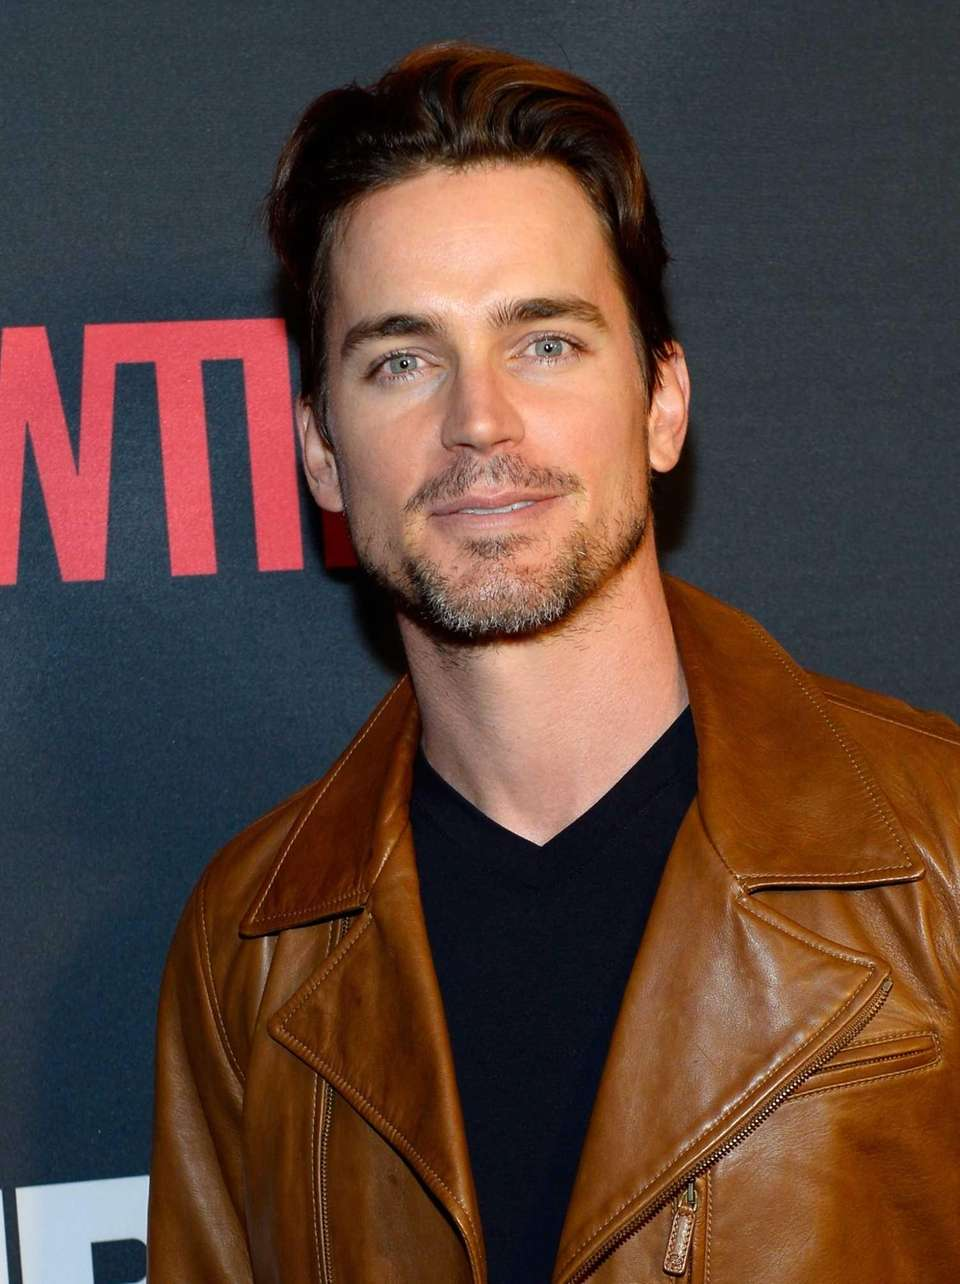 Matt Bomer was born on Oct. 11, 1977.